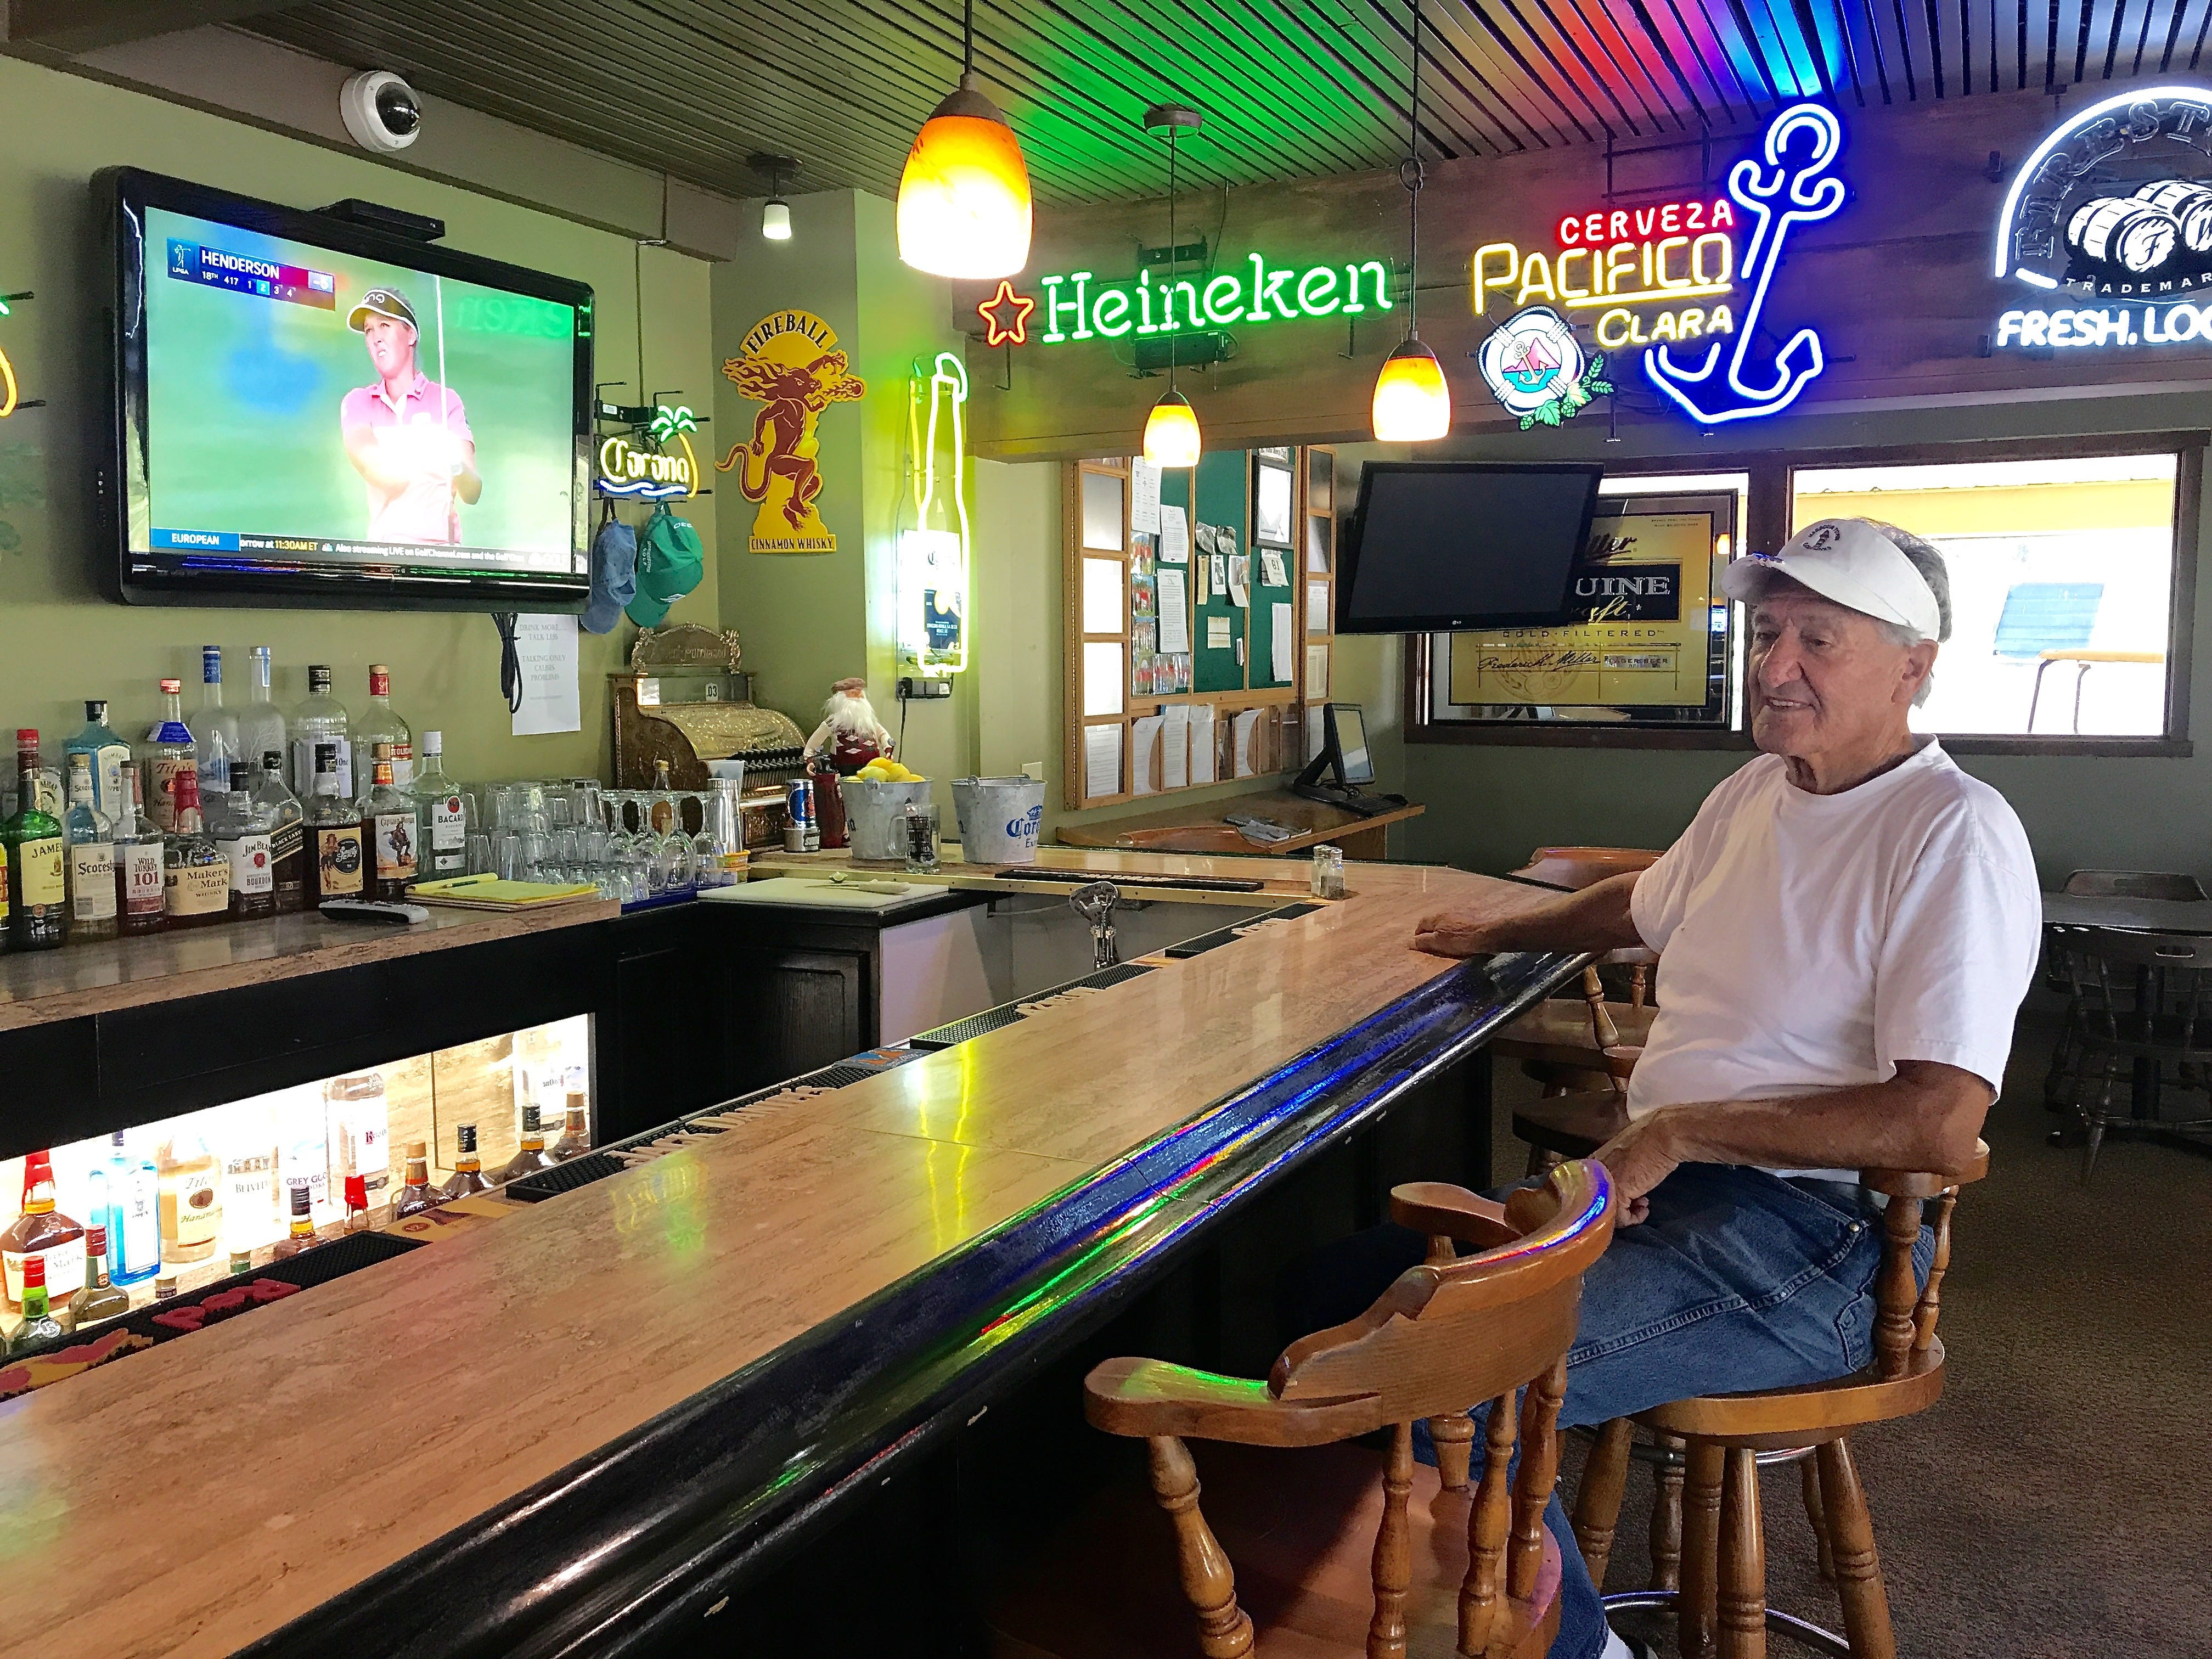 Ralph Corona, former superintendent at the Mountain View Golf Course in Santa Paula, sits at the facility's bar. Even though he's no longer paid to work at the course, he said he comes in voluntarily to help keep up the grounds.